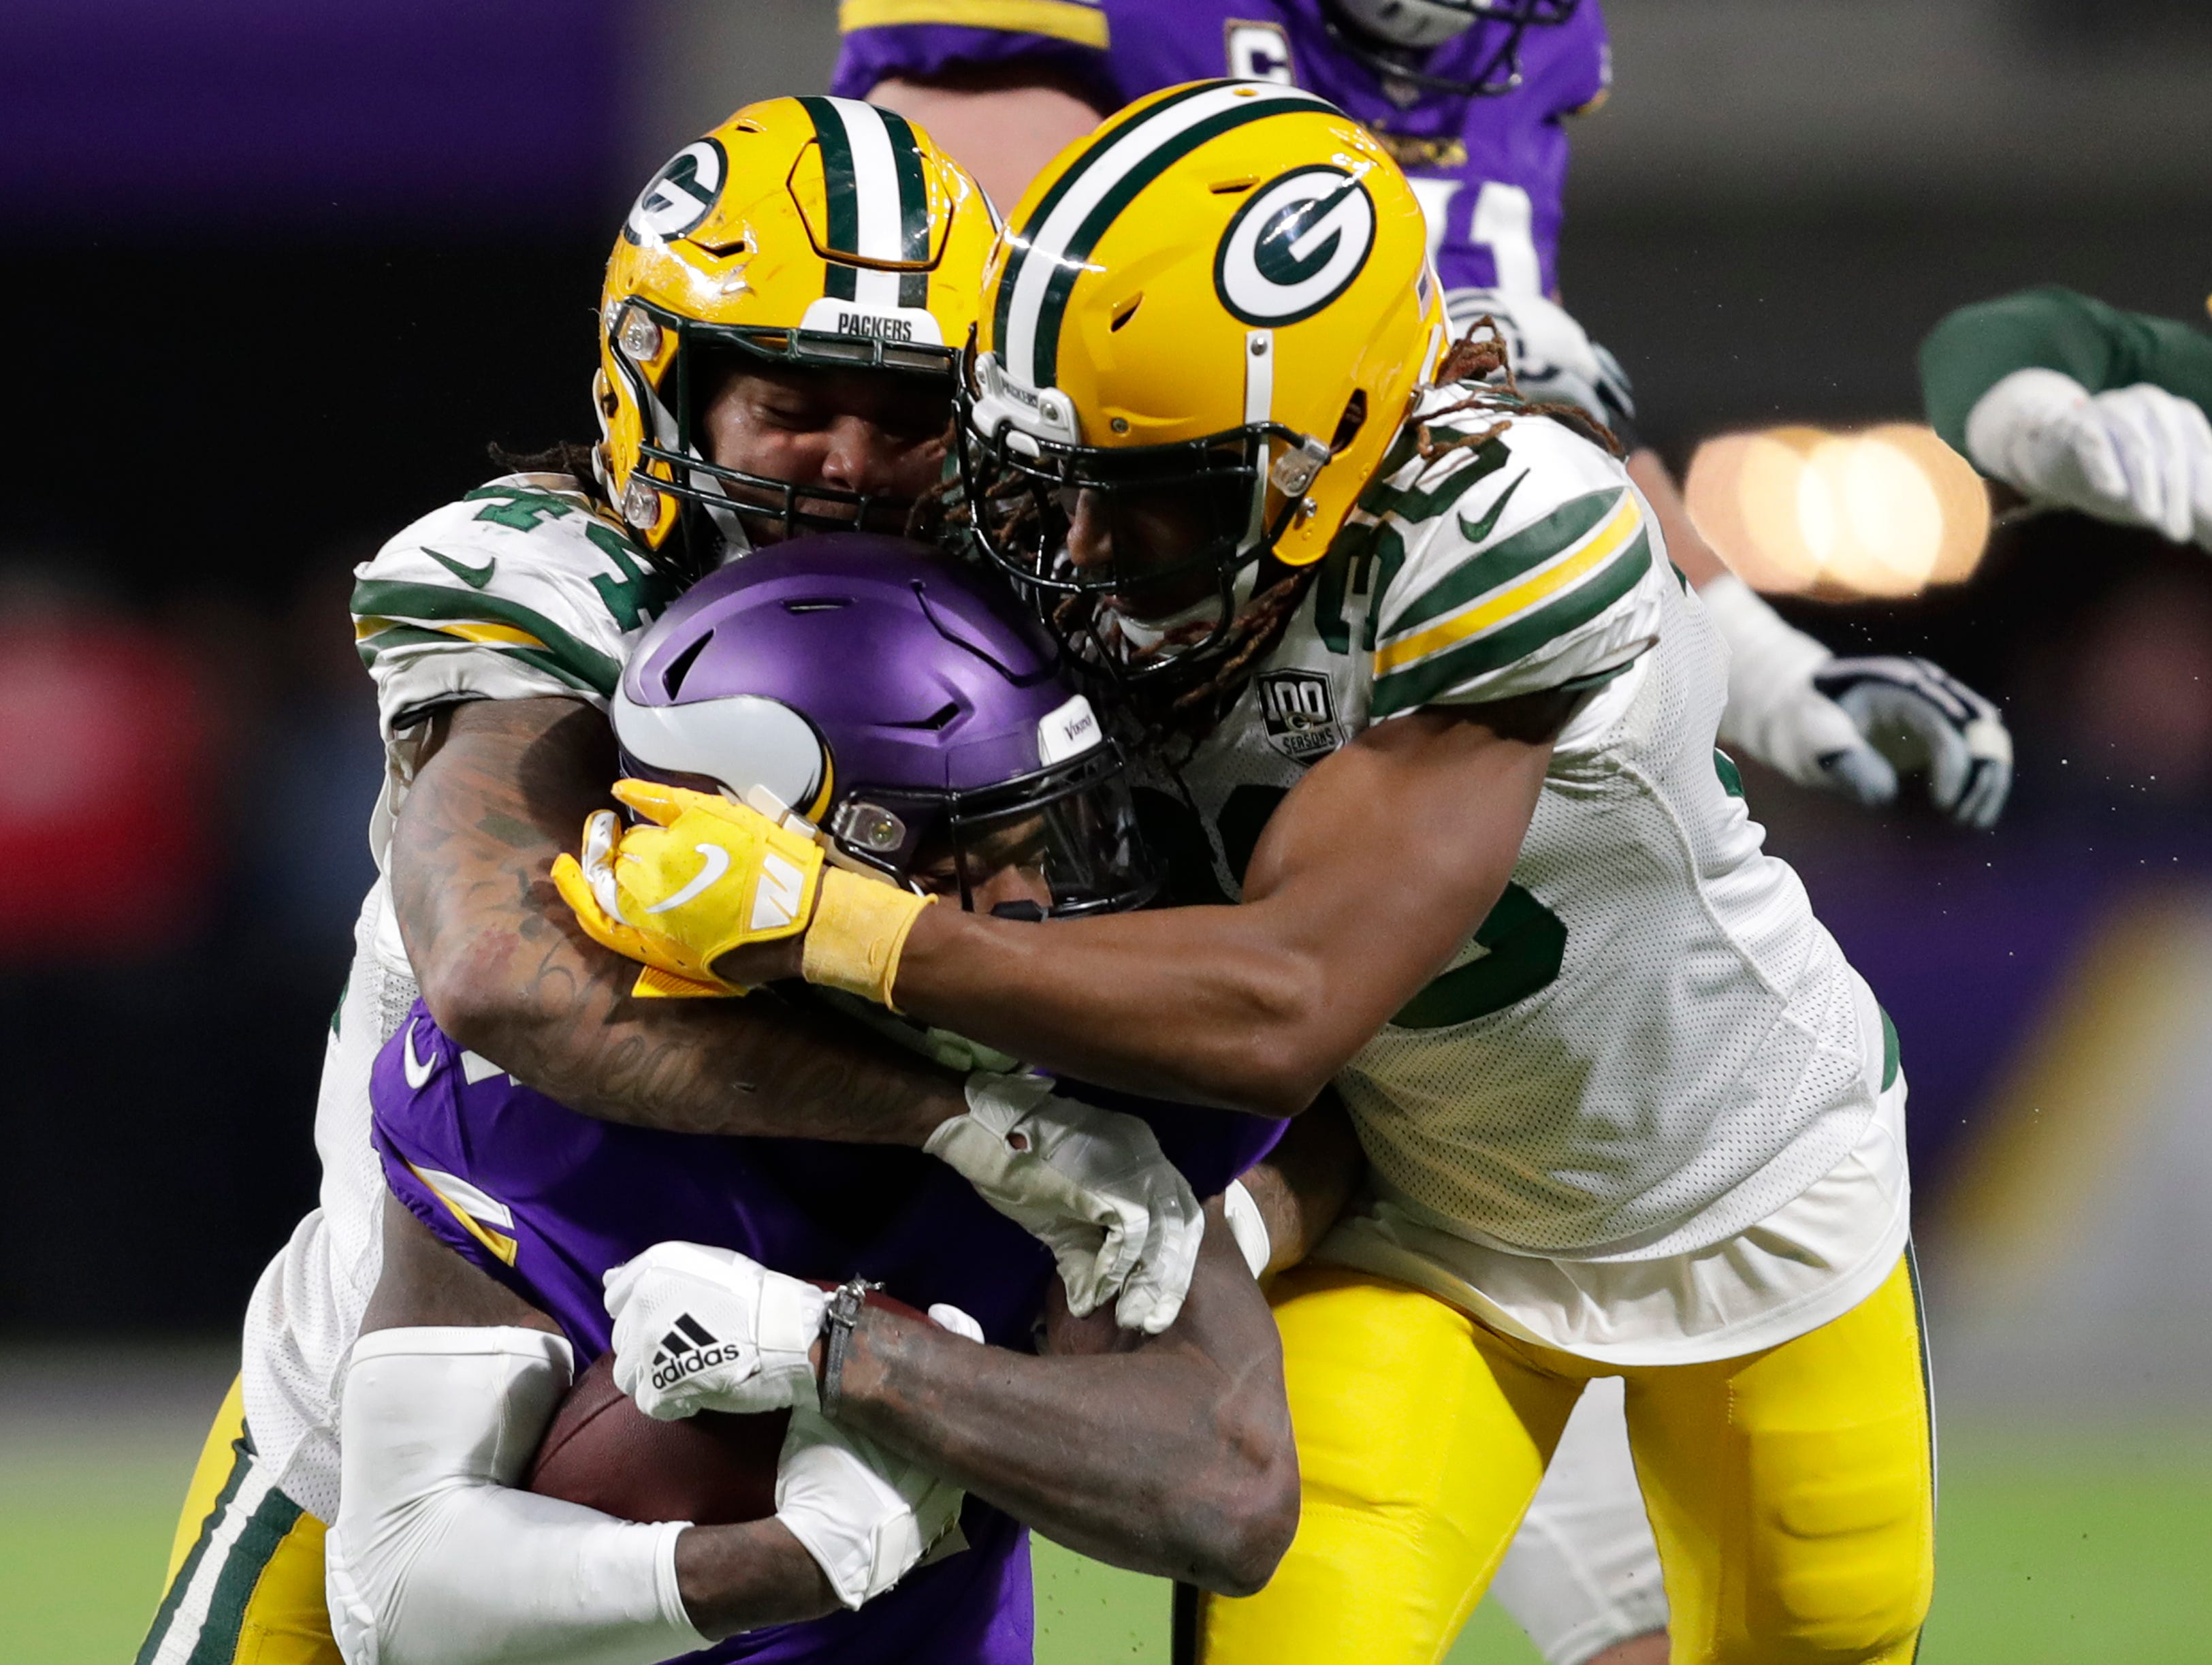 Green Bay Packers inside linebacker Antonio Morrison (44) and cornerback cornerback Tramon Williams (38) tackle Minnesota Vikings wide receiver Stefon Diggs (14) in the second half during their football game Sunday, November 25, 2018, at U.S. Bank Stadium in Minneapolis, Minn. Dan Powers/USA TODAY NETWORK-Wisconsin